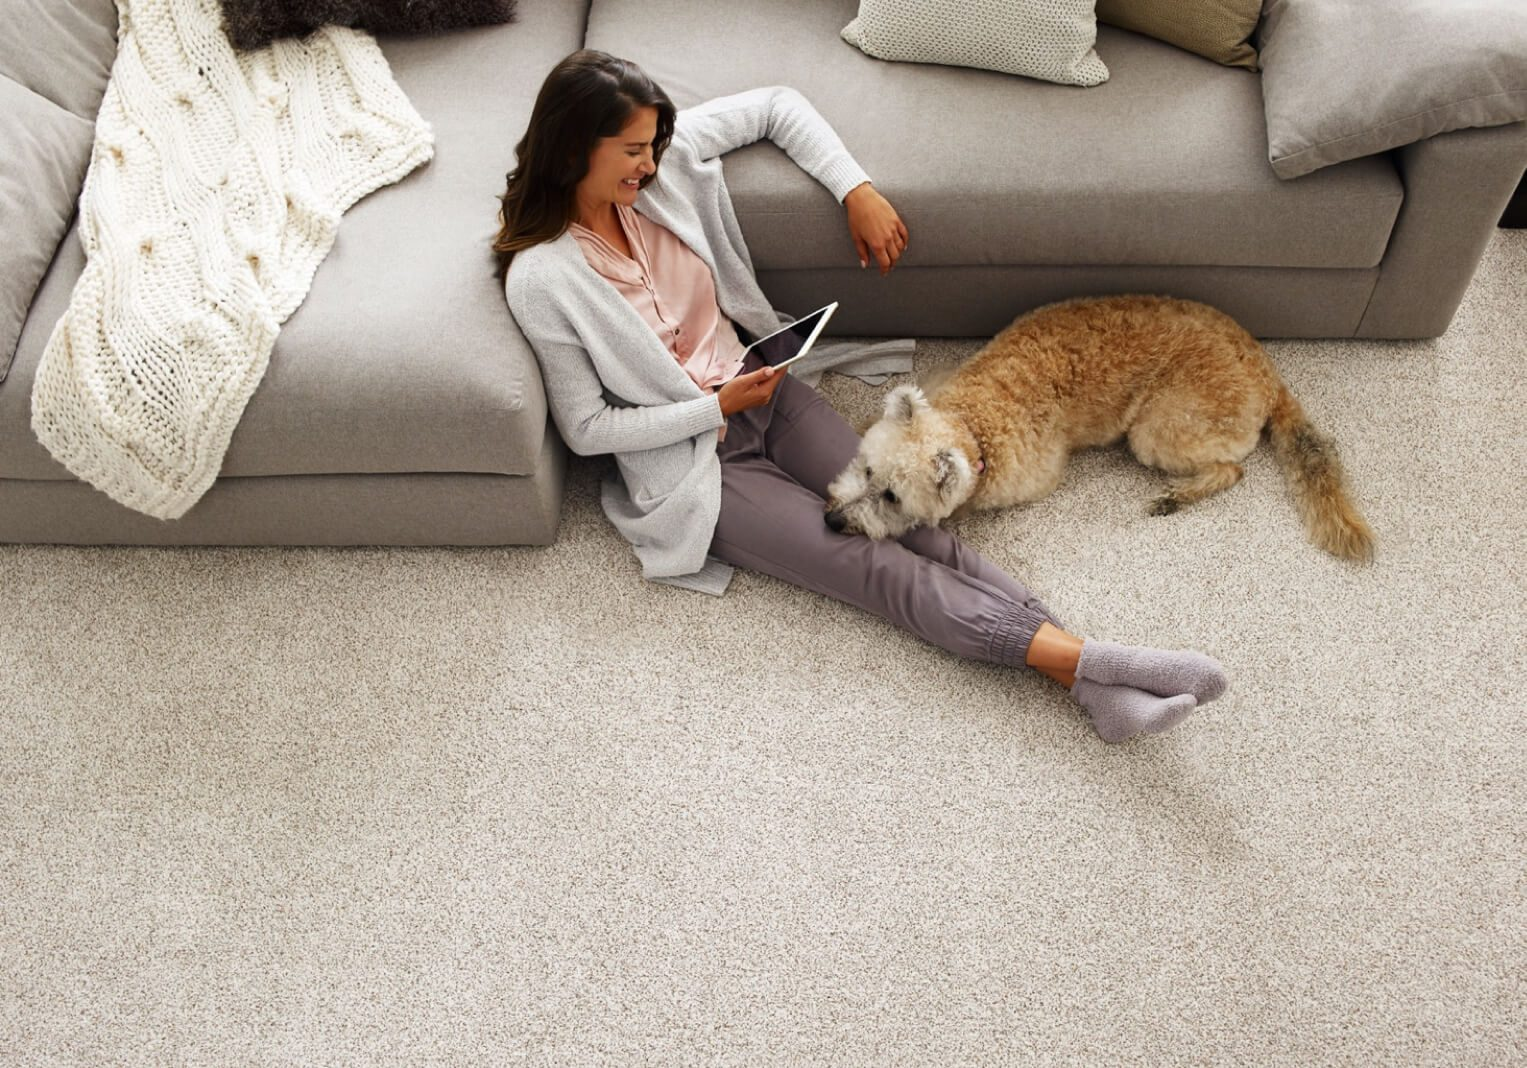 woman-on-carpet-with-dog | Haley's Flooring & Interiors